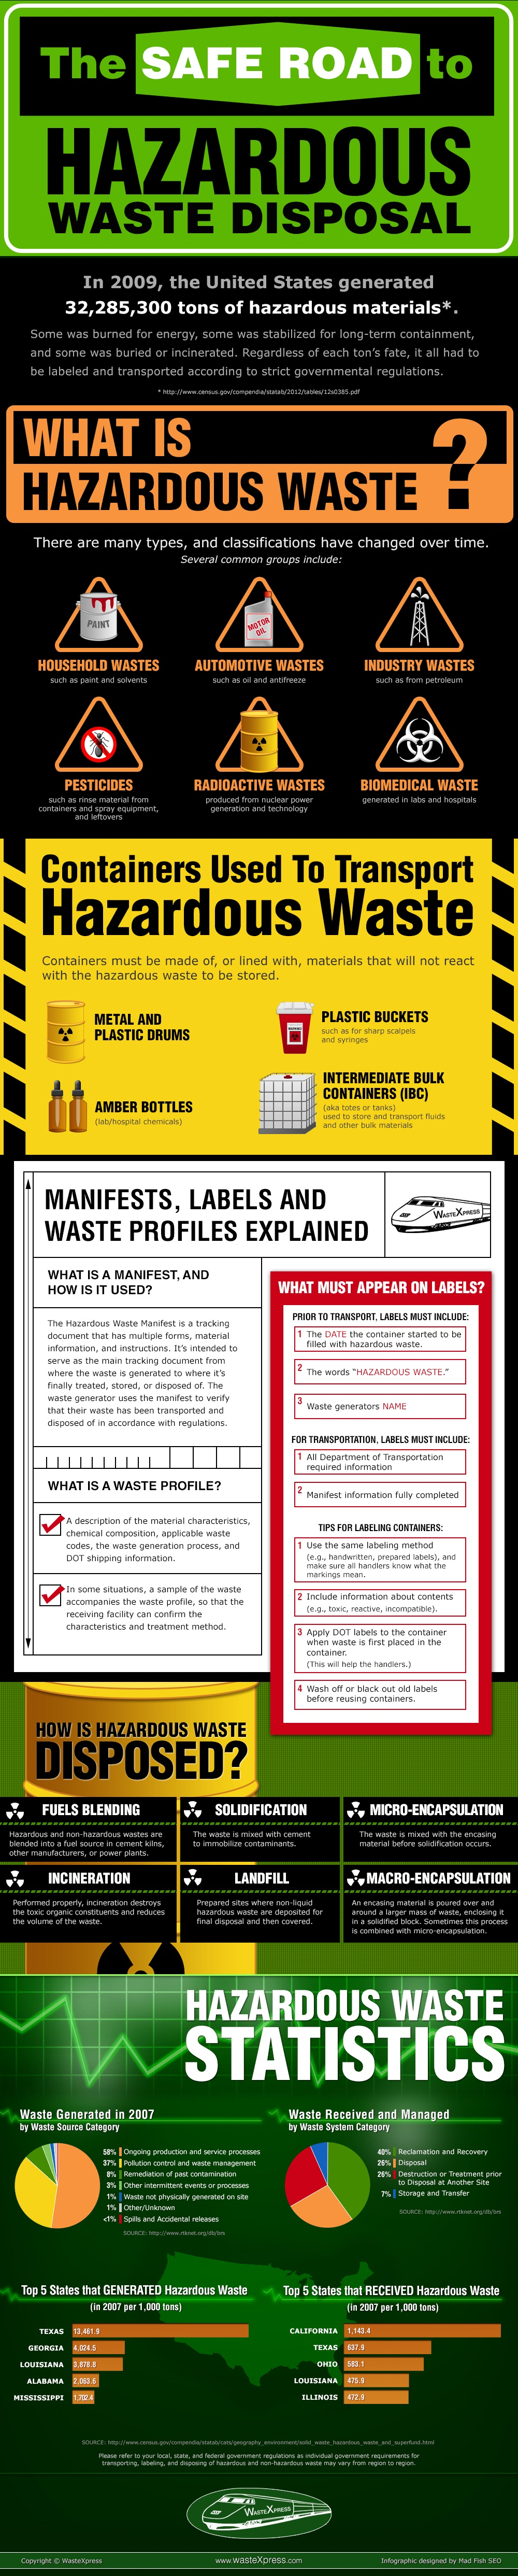 Get the Facts on Hazardous Waste Disposal